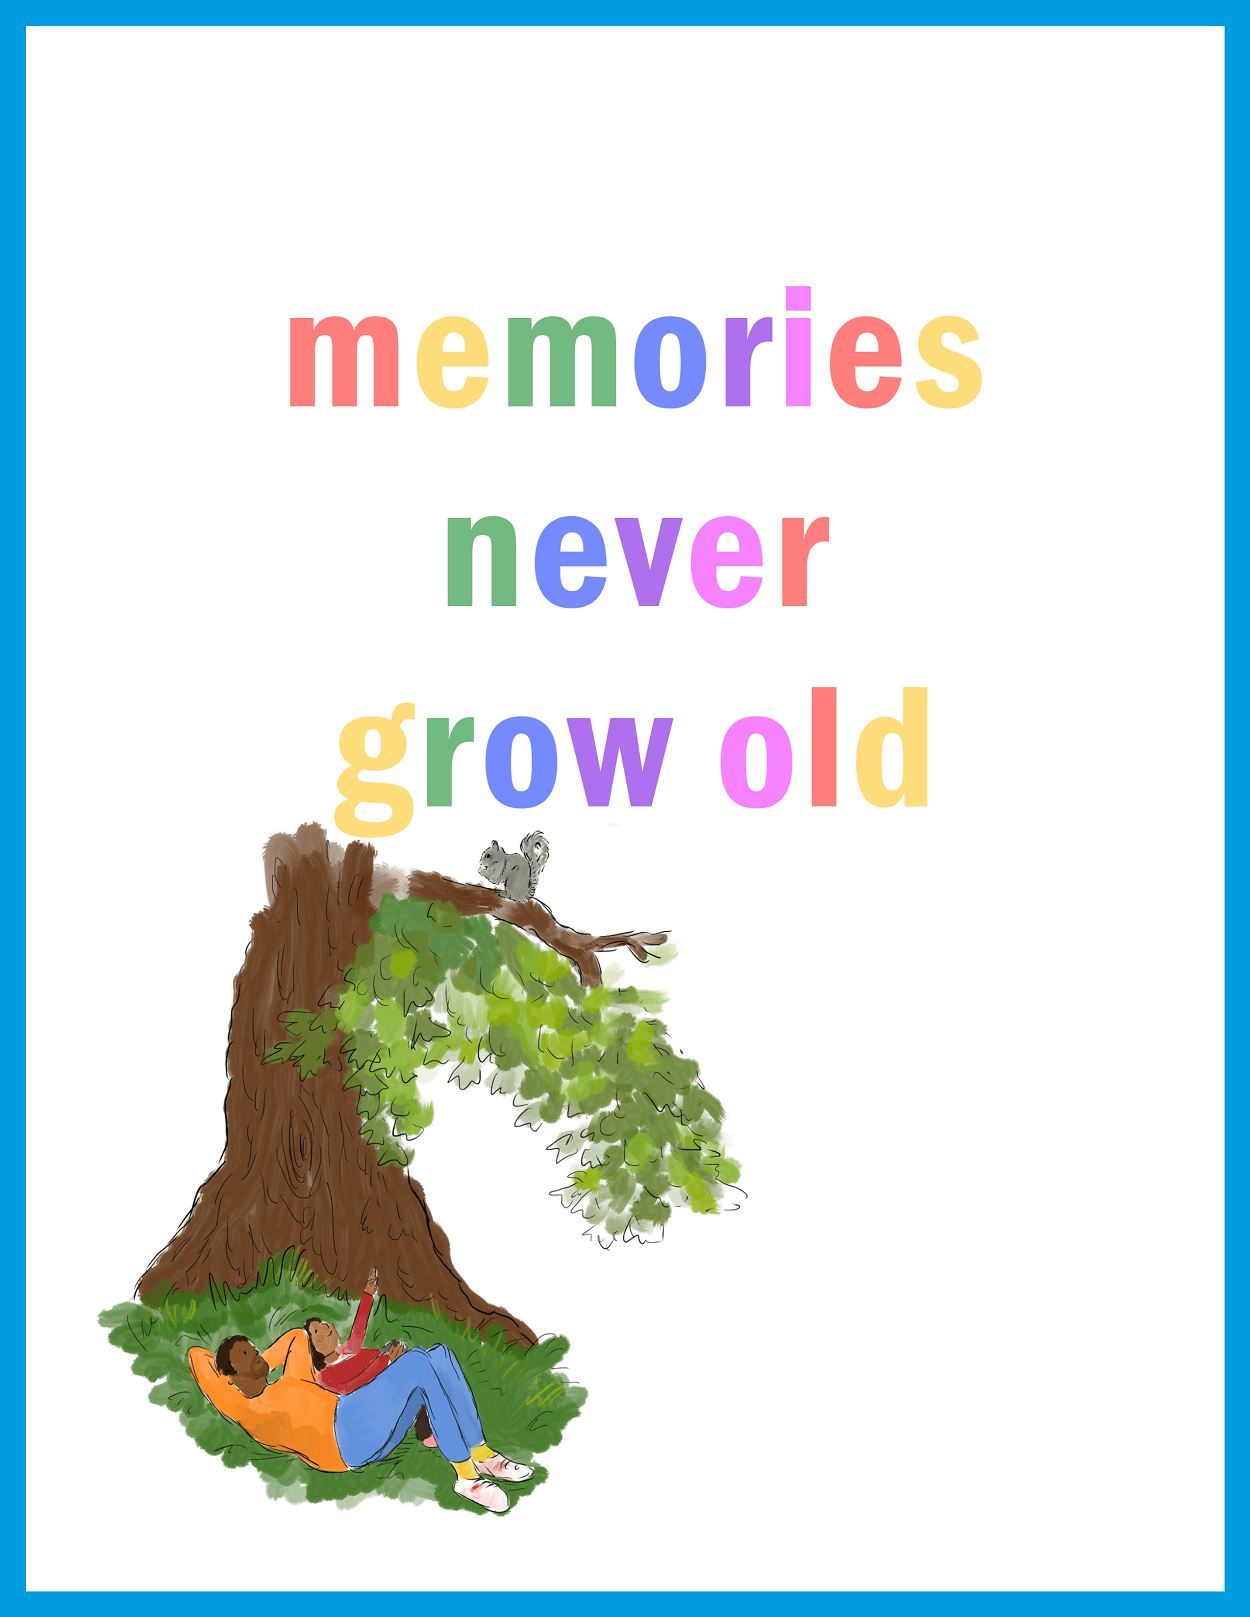 Memories never grow old print on white A4 Kind Shop